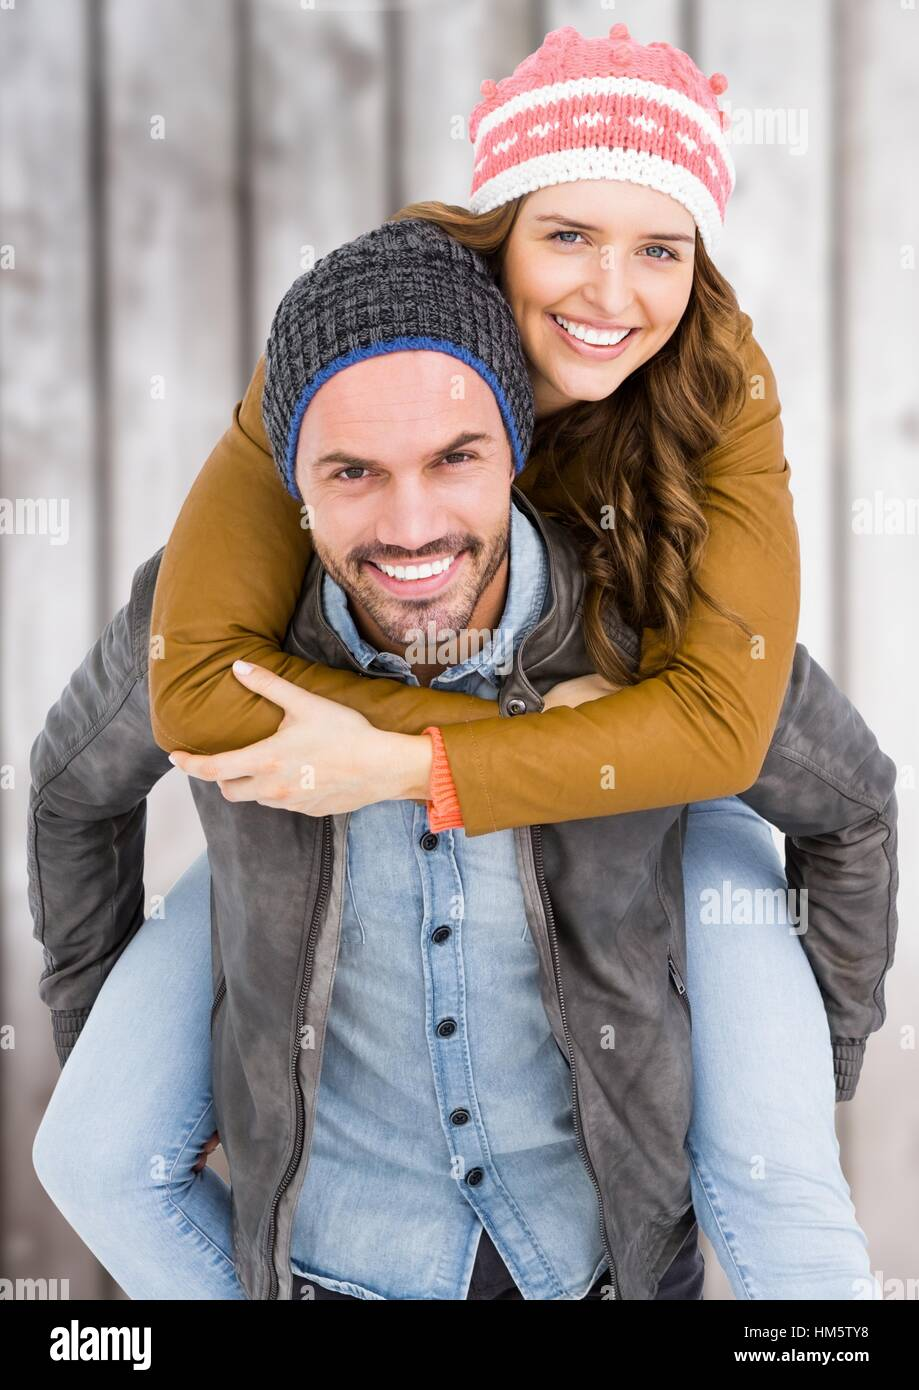 Man giving piggy back to woman - Stock Image